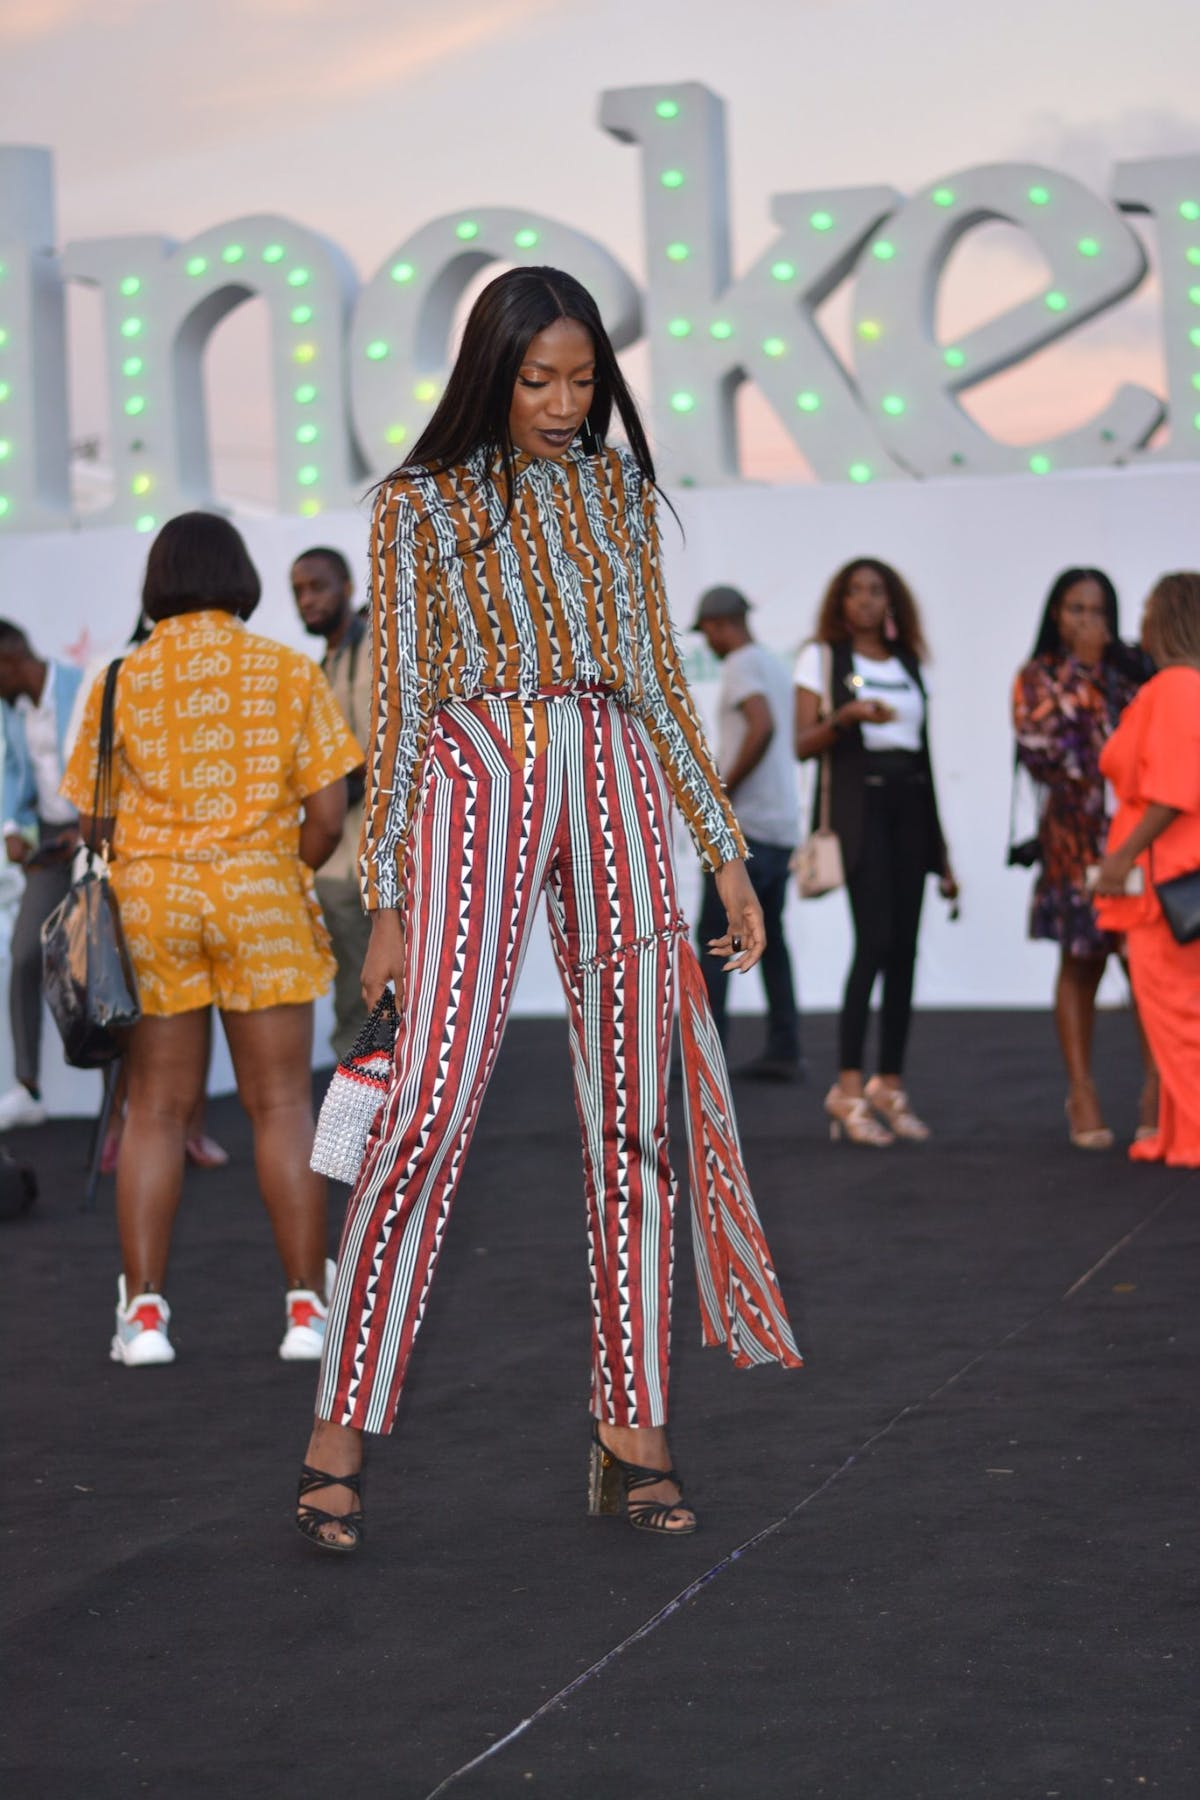 How Lagos Became The New Fashion Capital Of The World